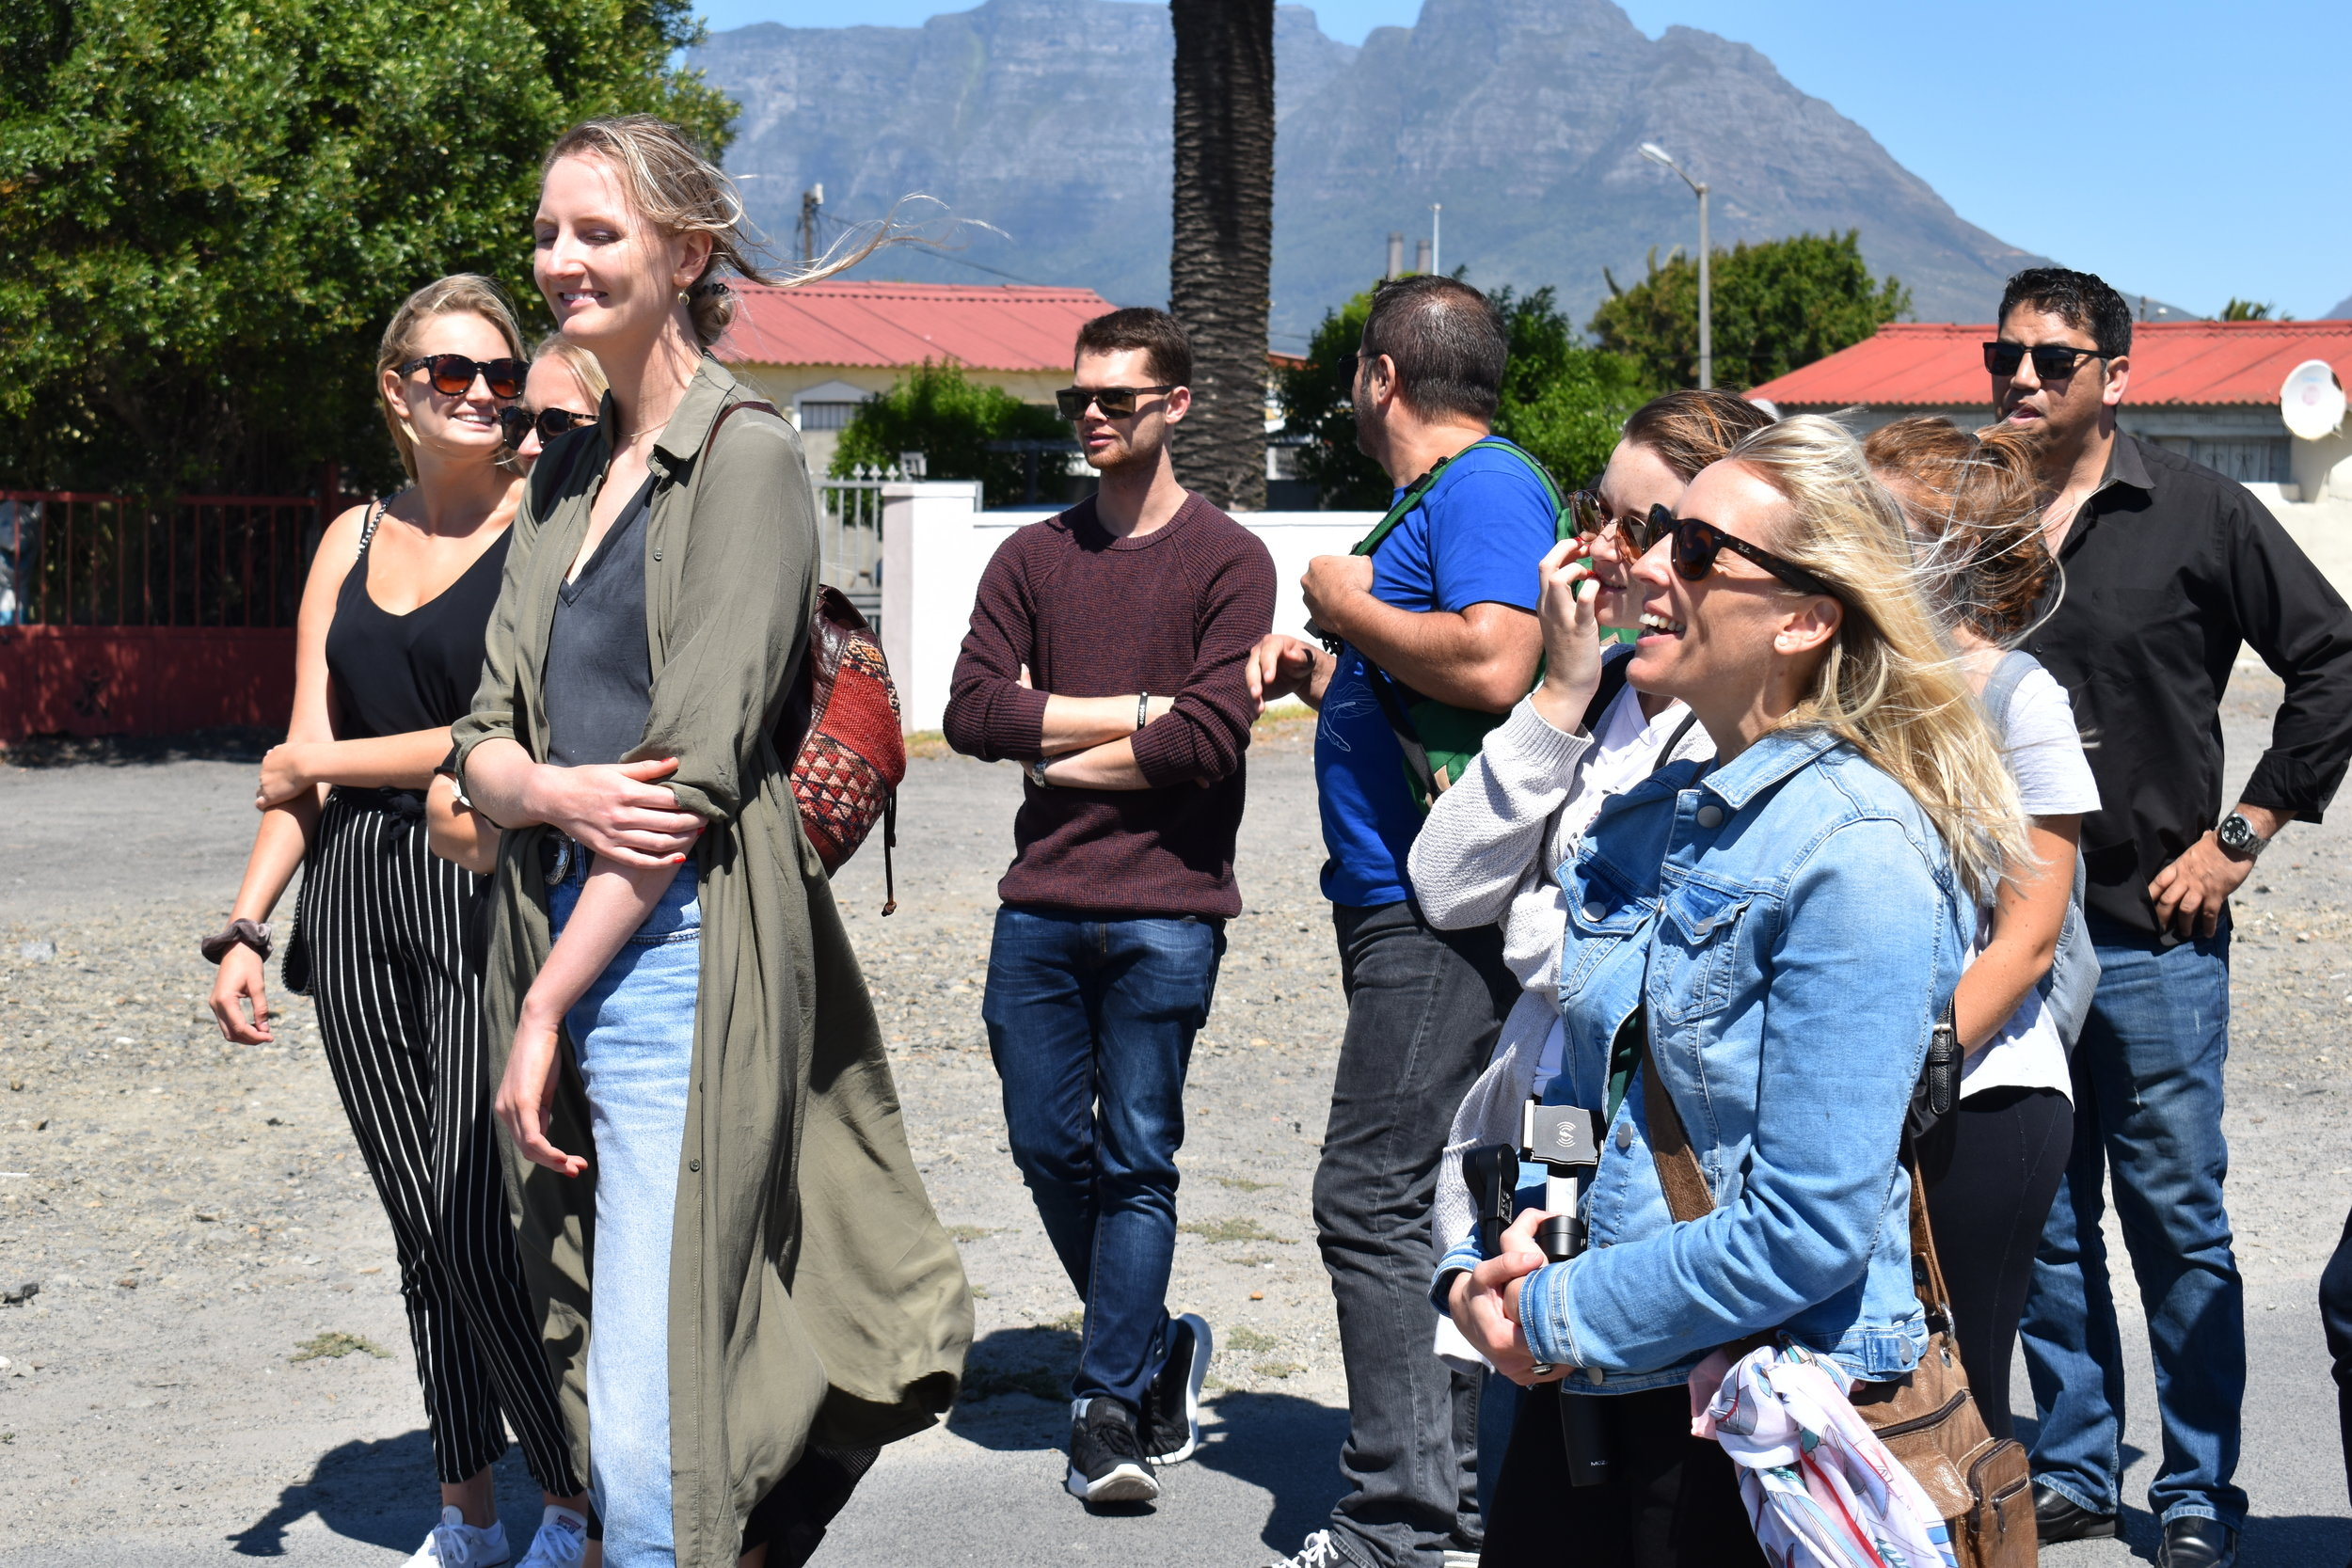 Travel Industry is Raving. - Read what Cape Town's top travel companies are writing about SidebySide's Blend the City tour